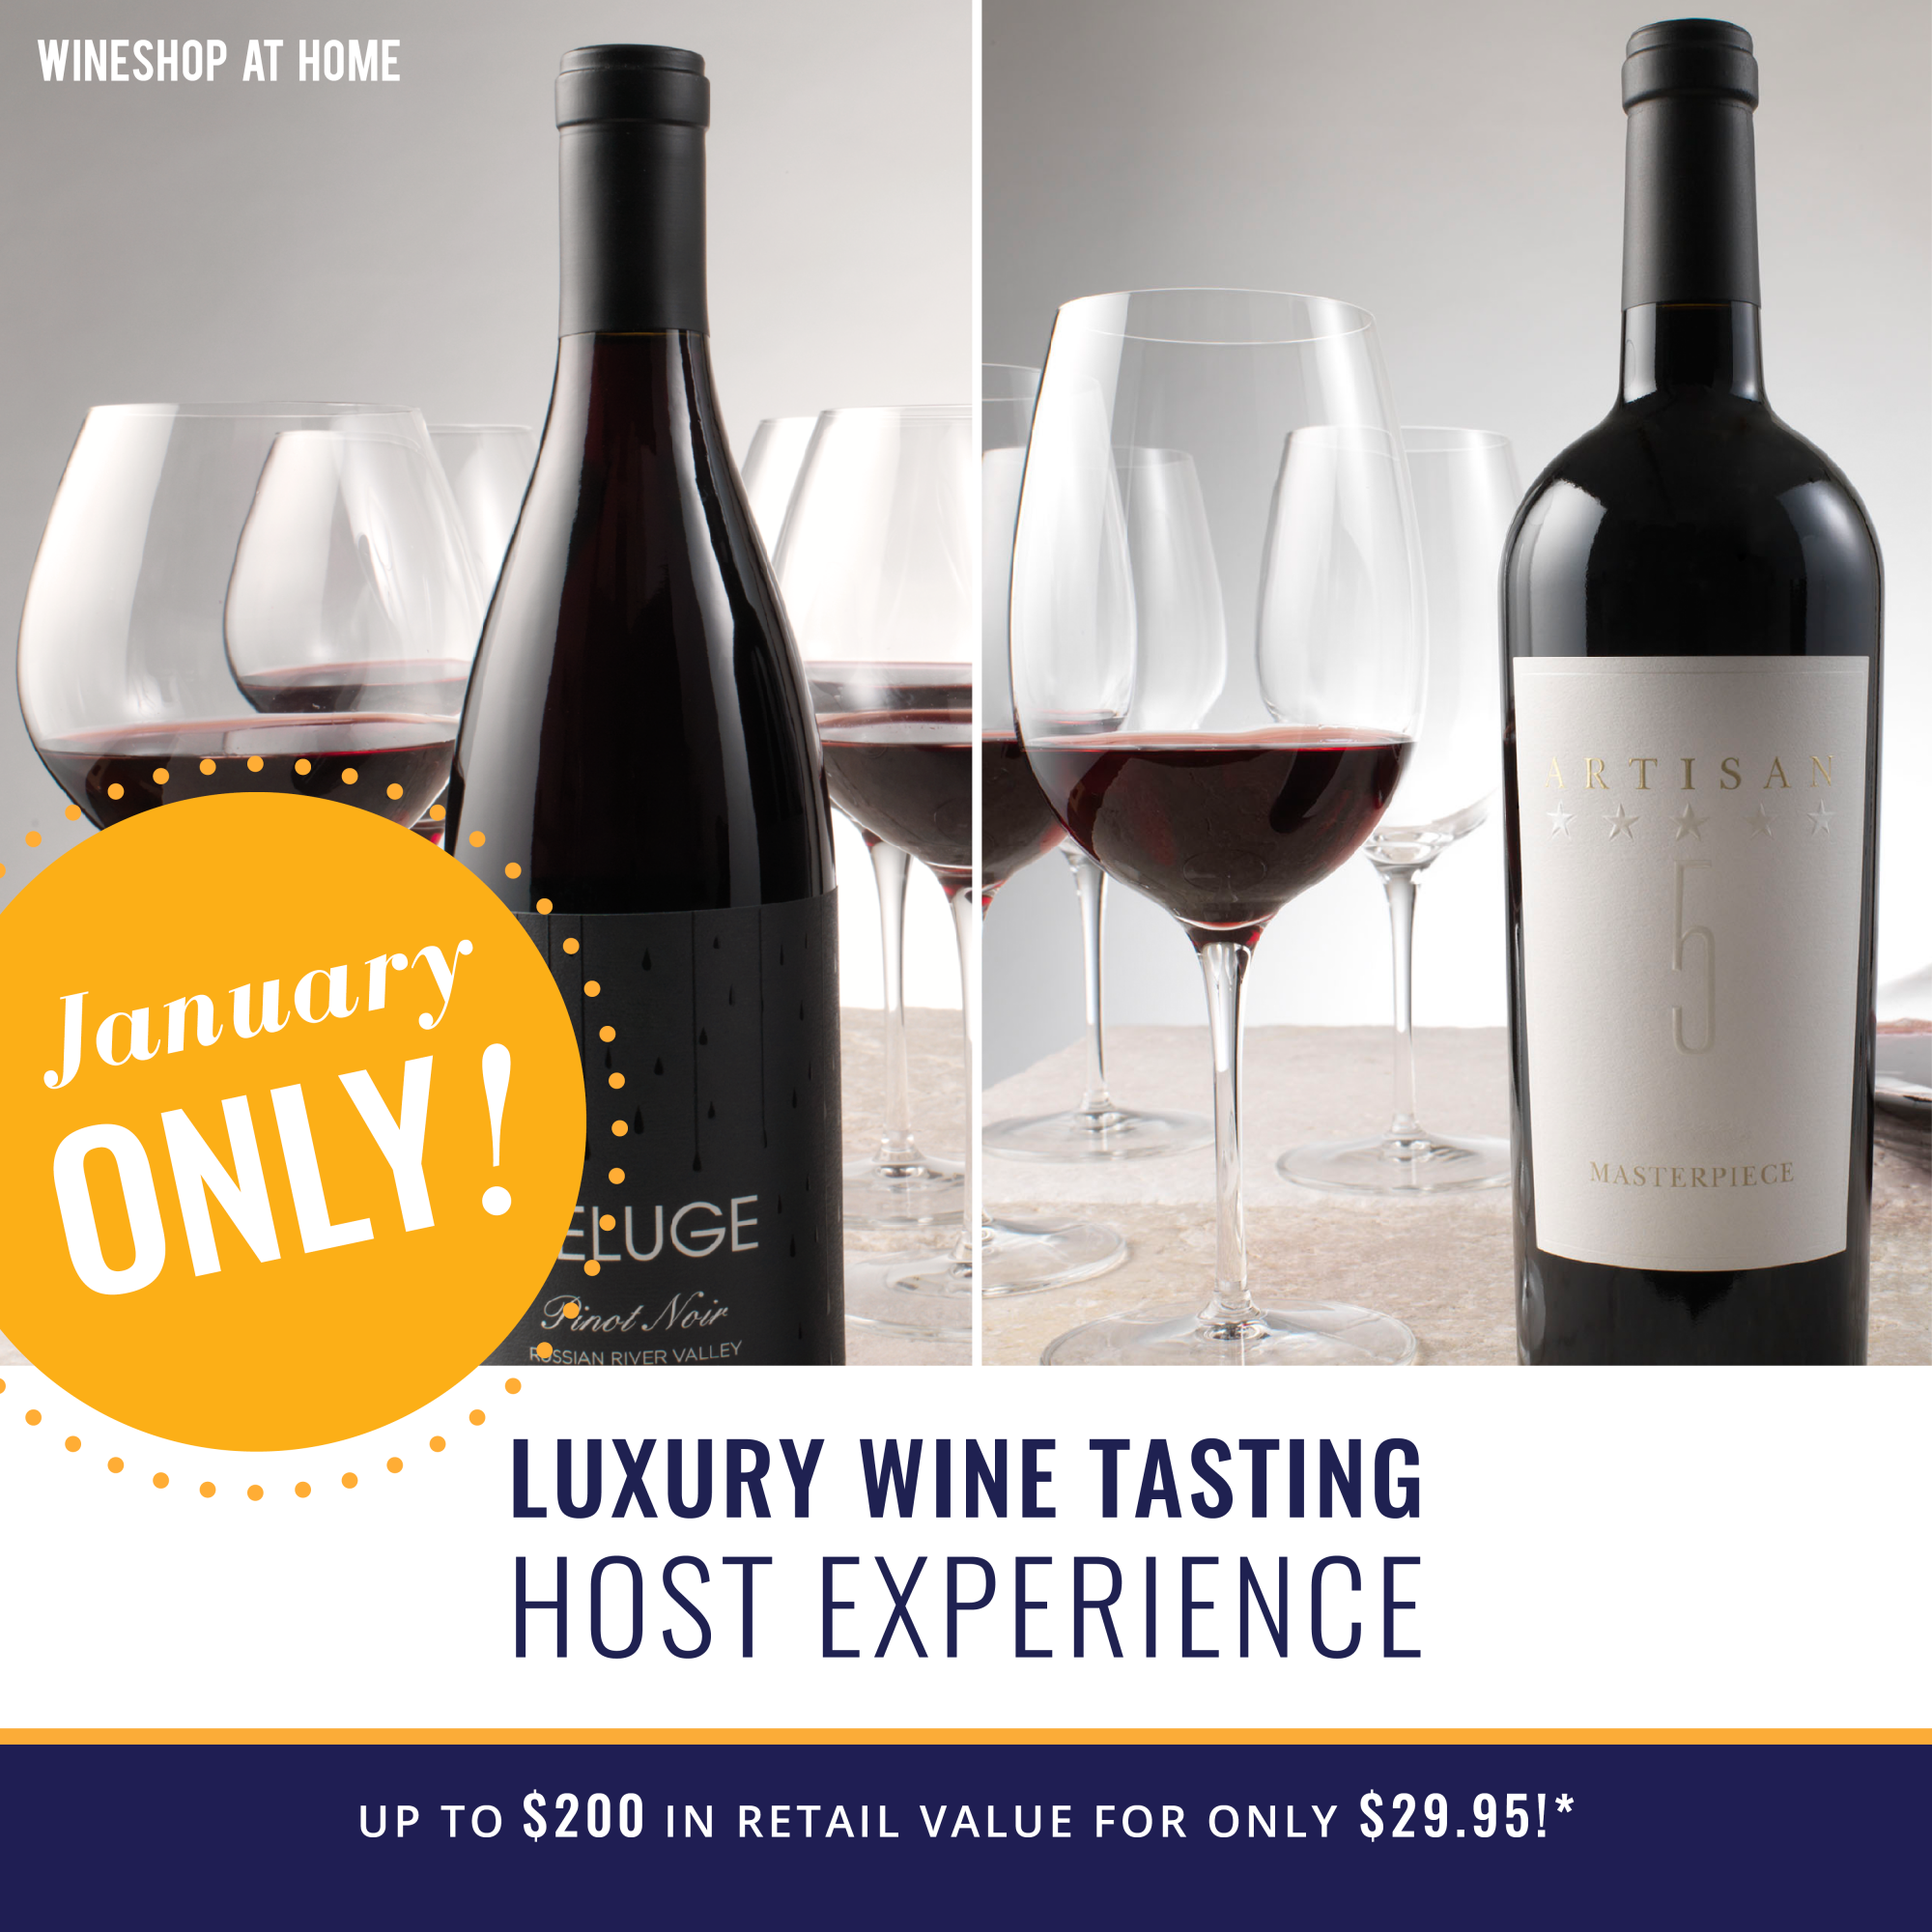 This January only, you can experience sheer luxury with our Luxury ...